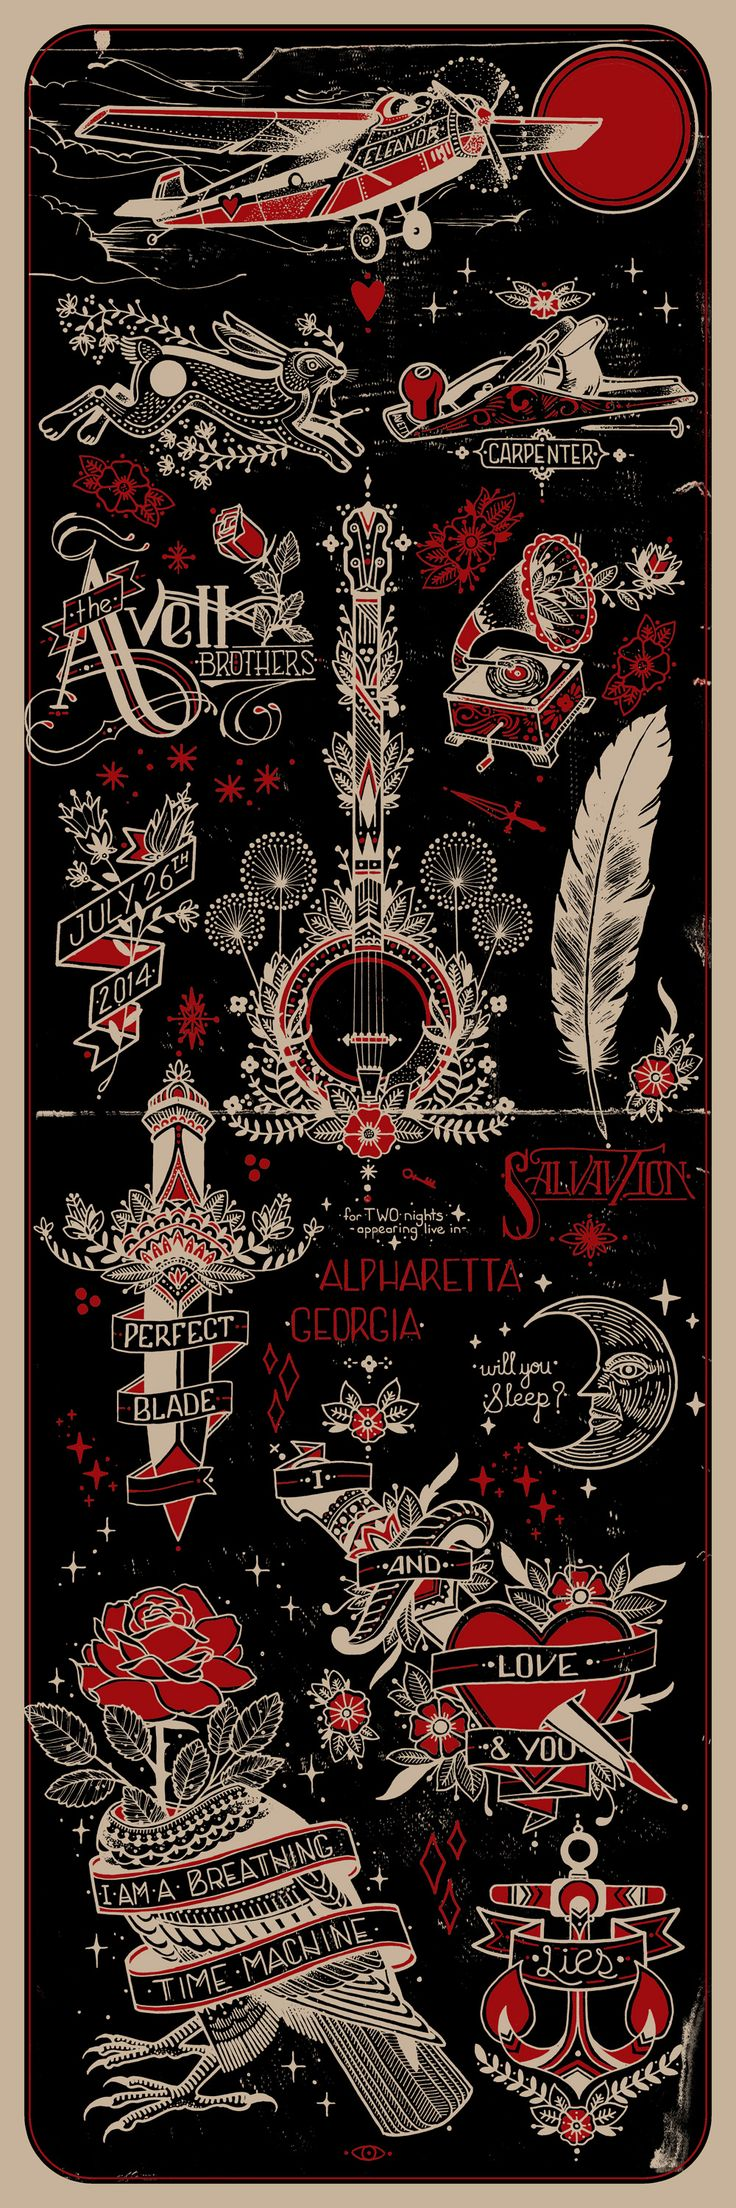 """Click Image to see Full Size  12"""" x 36"""" Limited Edition of 300 Screenprint (75 available online) Signed and numbered 2 Colors (1 color on back) French Kraft Paper *100% recycled and made in the USA using sustainable energy  For The Avett Brothers show on 7-26-14 in Alpharetta, GA at the Verizon  Amphitheater  I love the Avett Brothers, their music and the meaning that motivates it.  It inspires me to create, to share what I find meaningful, provocative, and  hopeful. I wanted to make a…"""